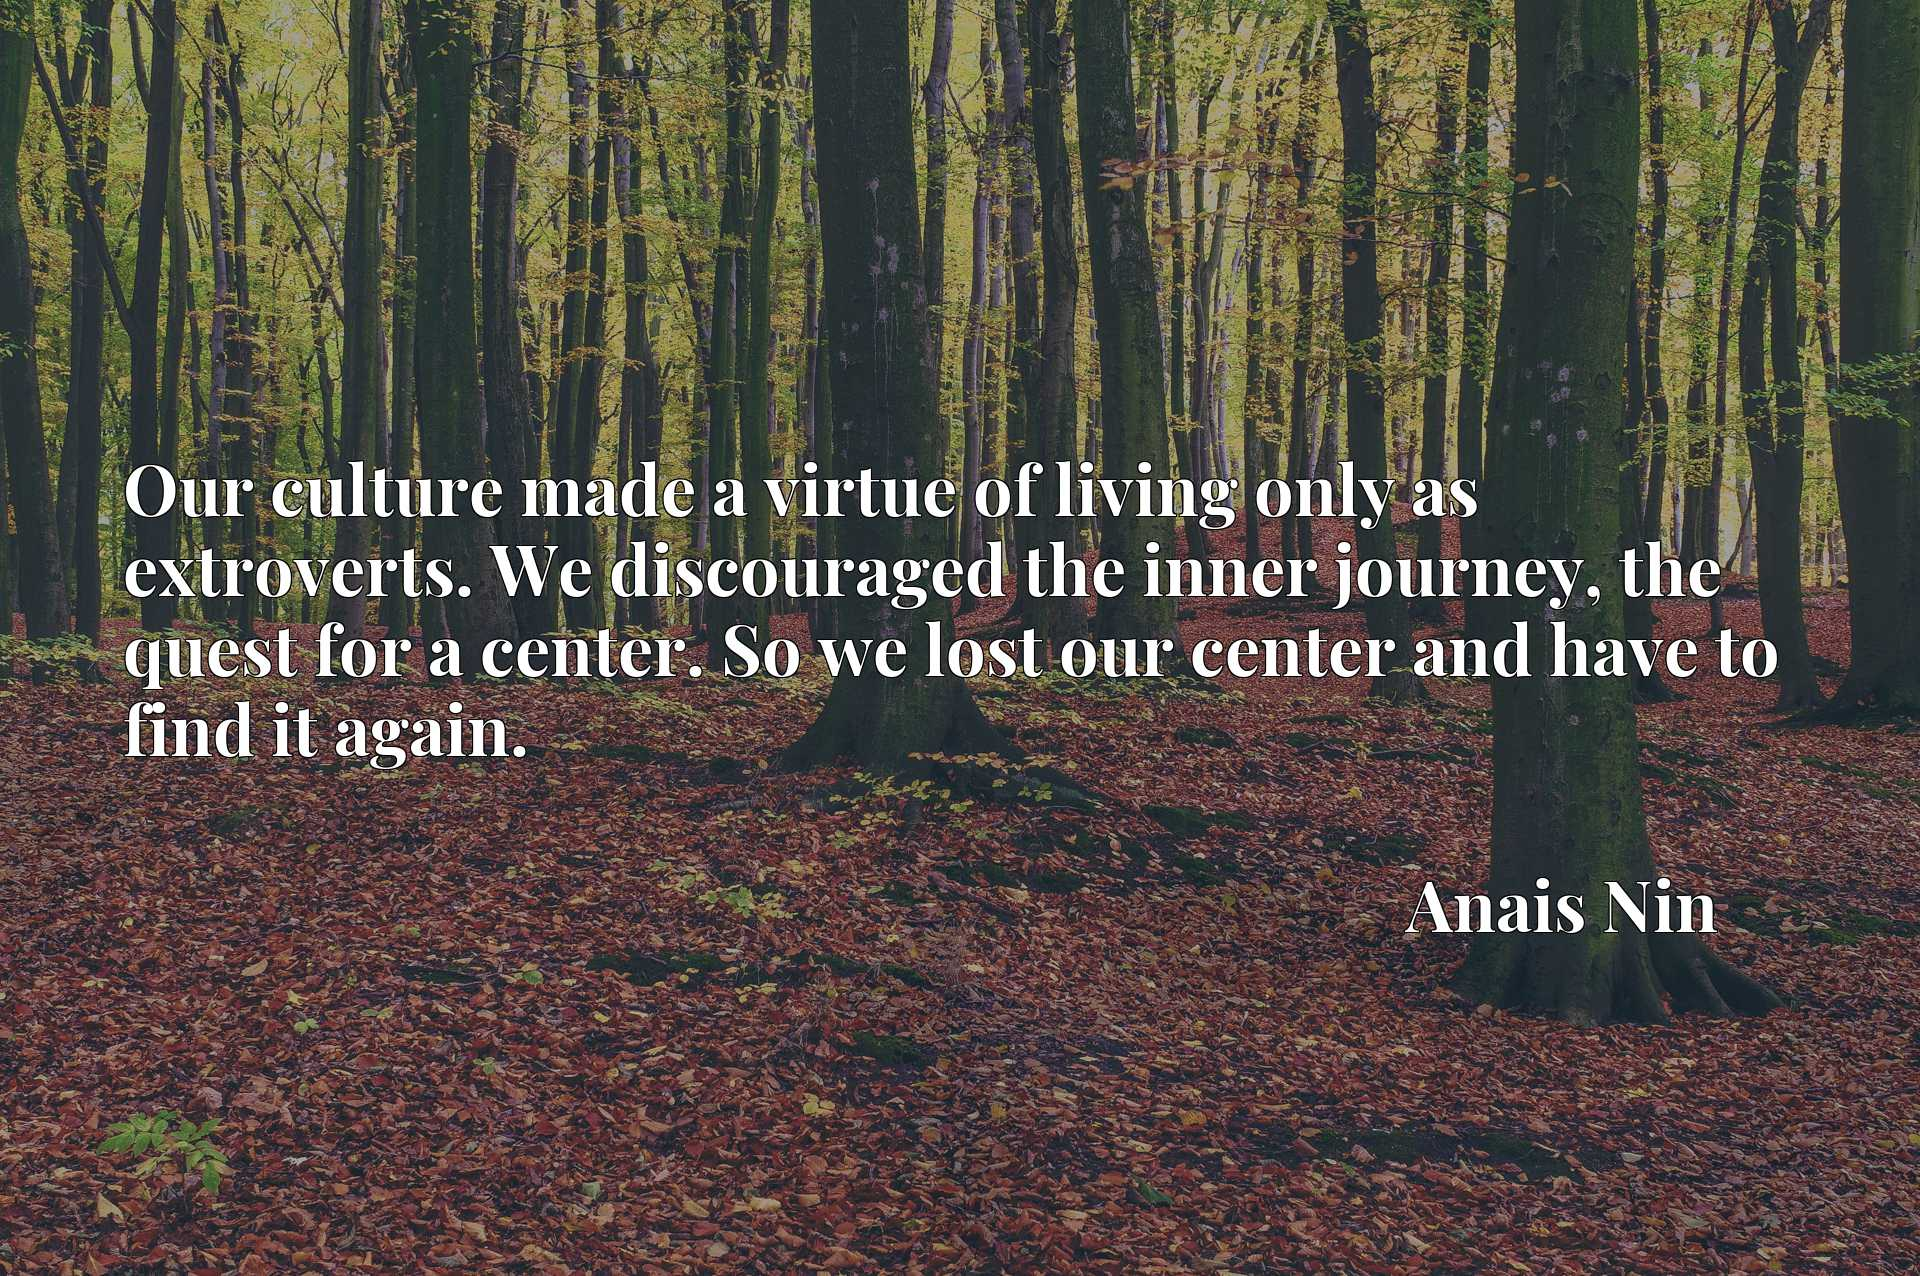 Our culture made a virtue of living only as extroverts. We discouraged the inner journey, the quest for a center. So we lost our center and have to find it again.